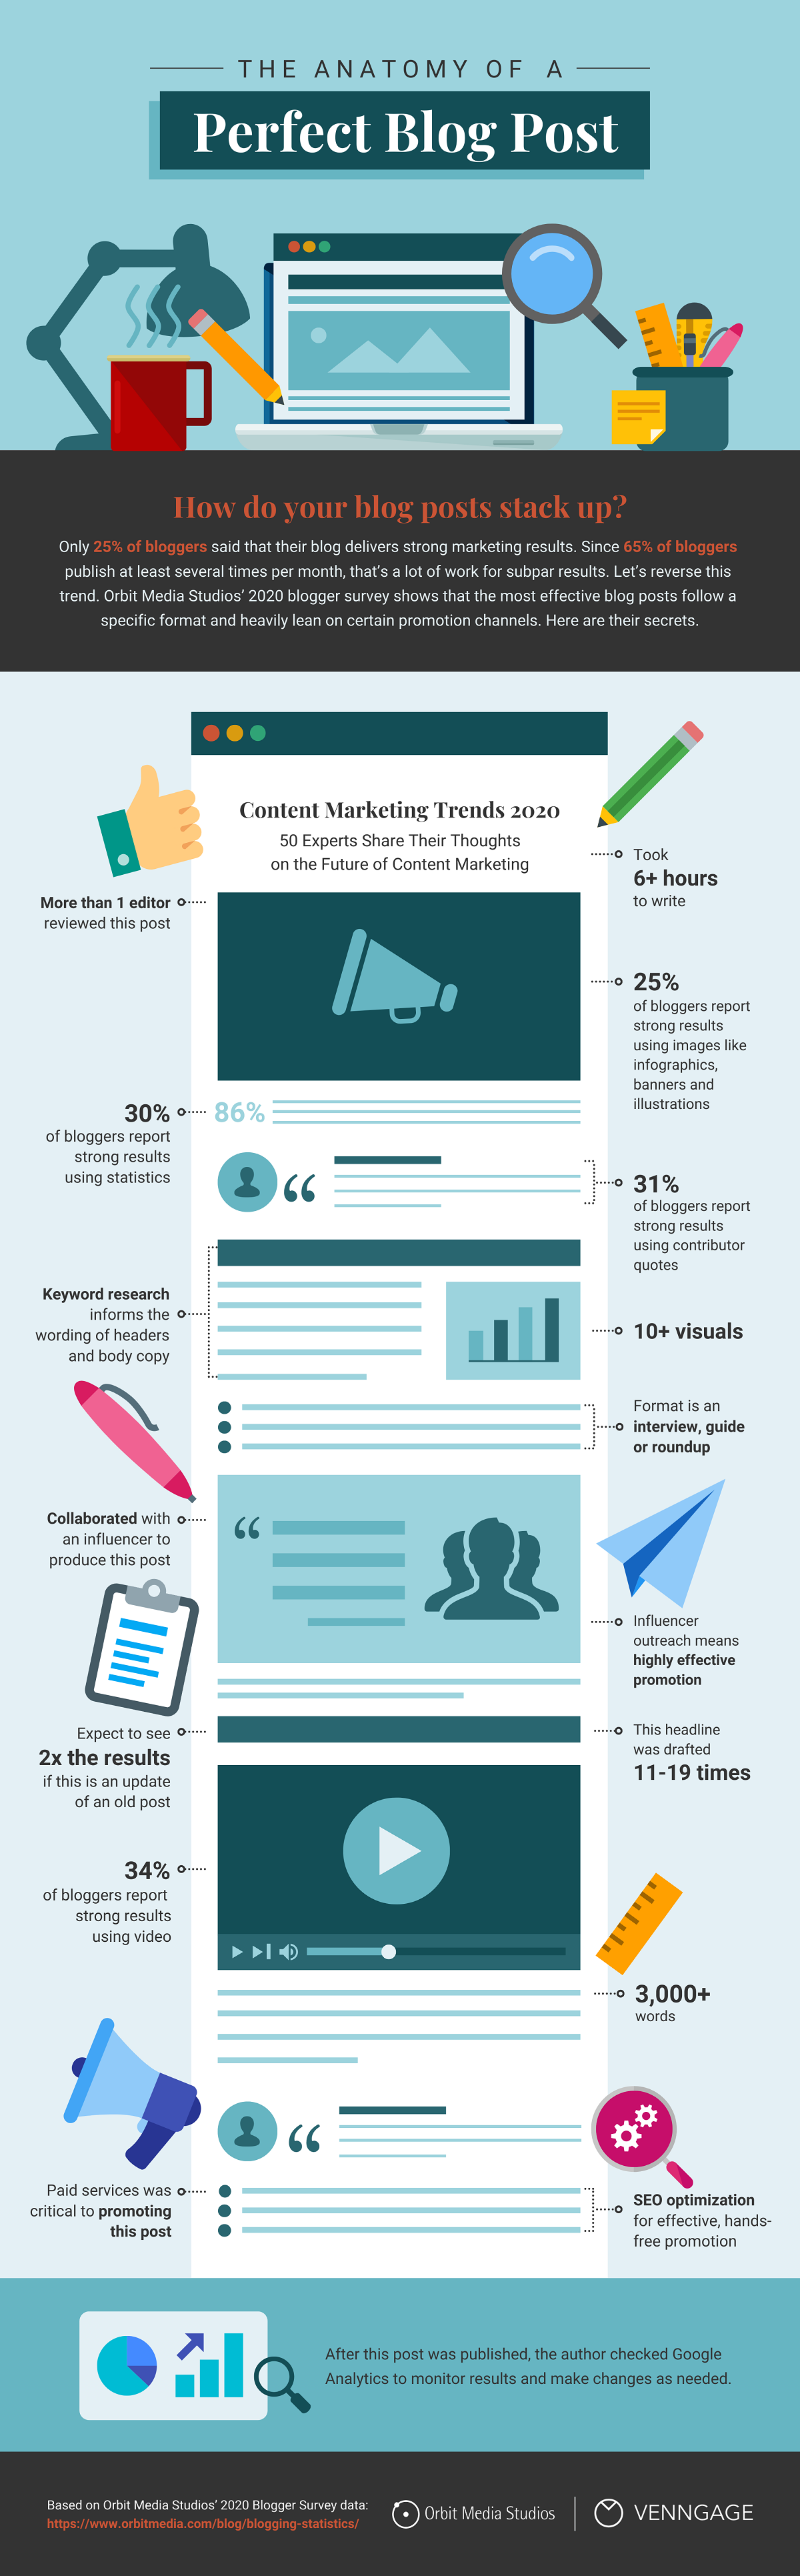 The Anatomy of the Perfect Blog Post: Proven Blogging Tips for 2020 #infographic